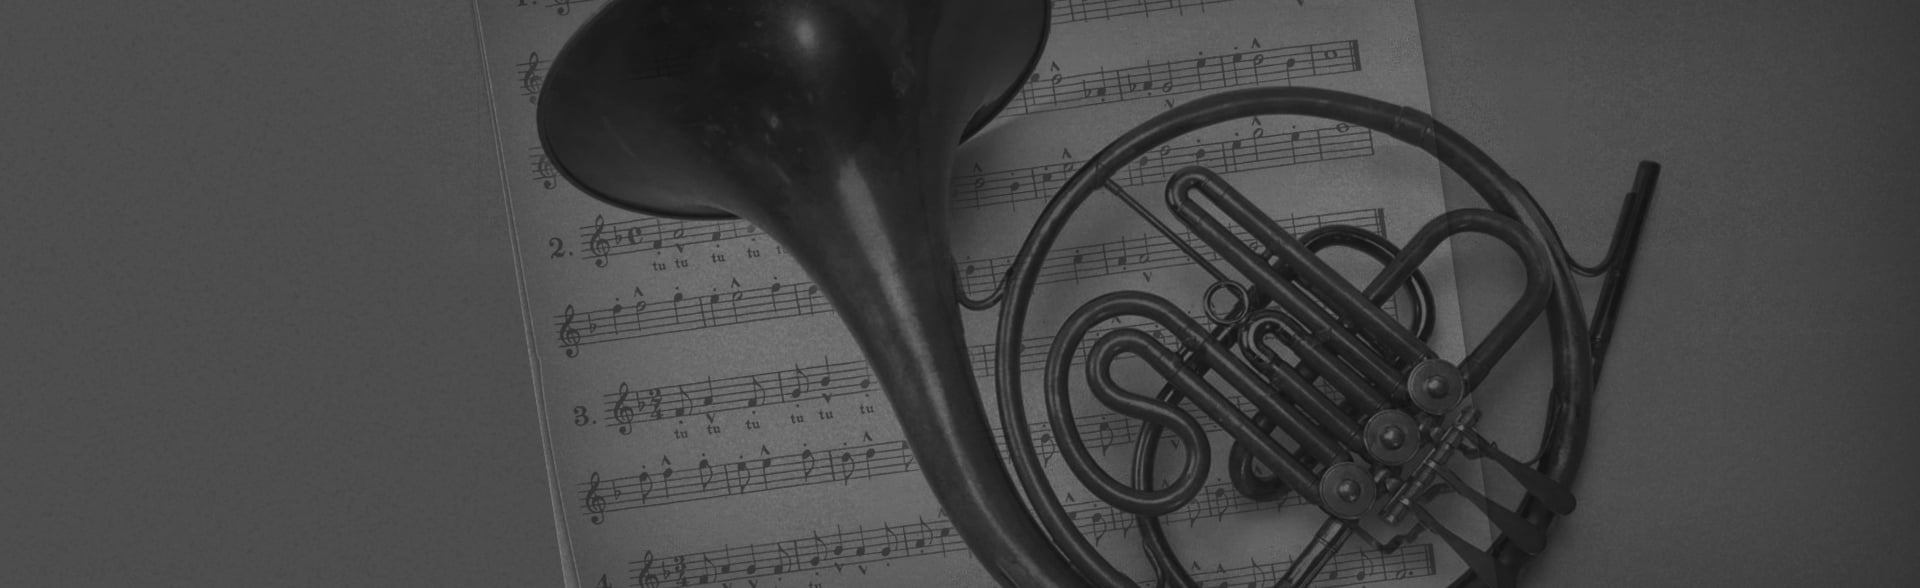 horn_arban_LP_header